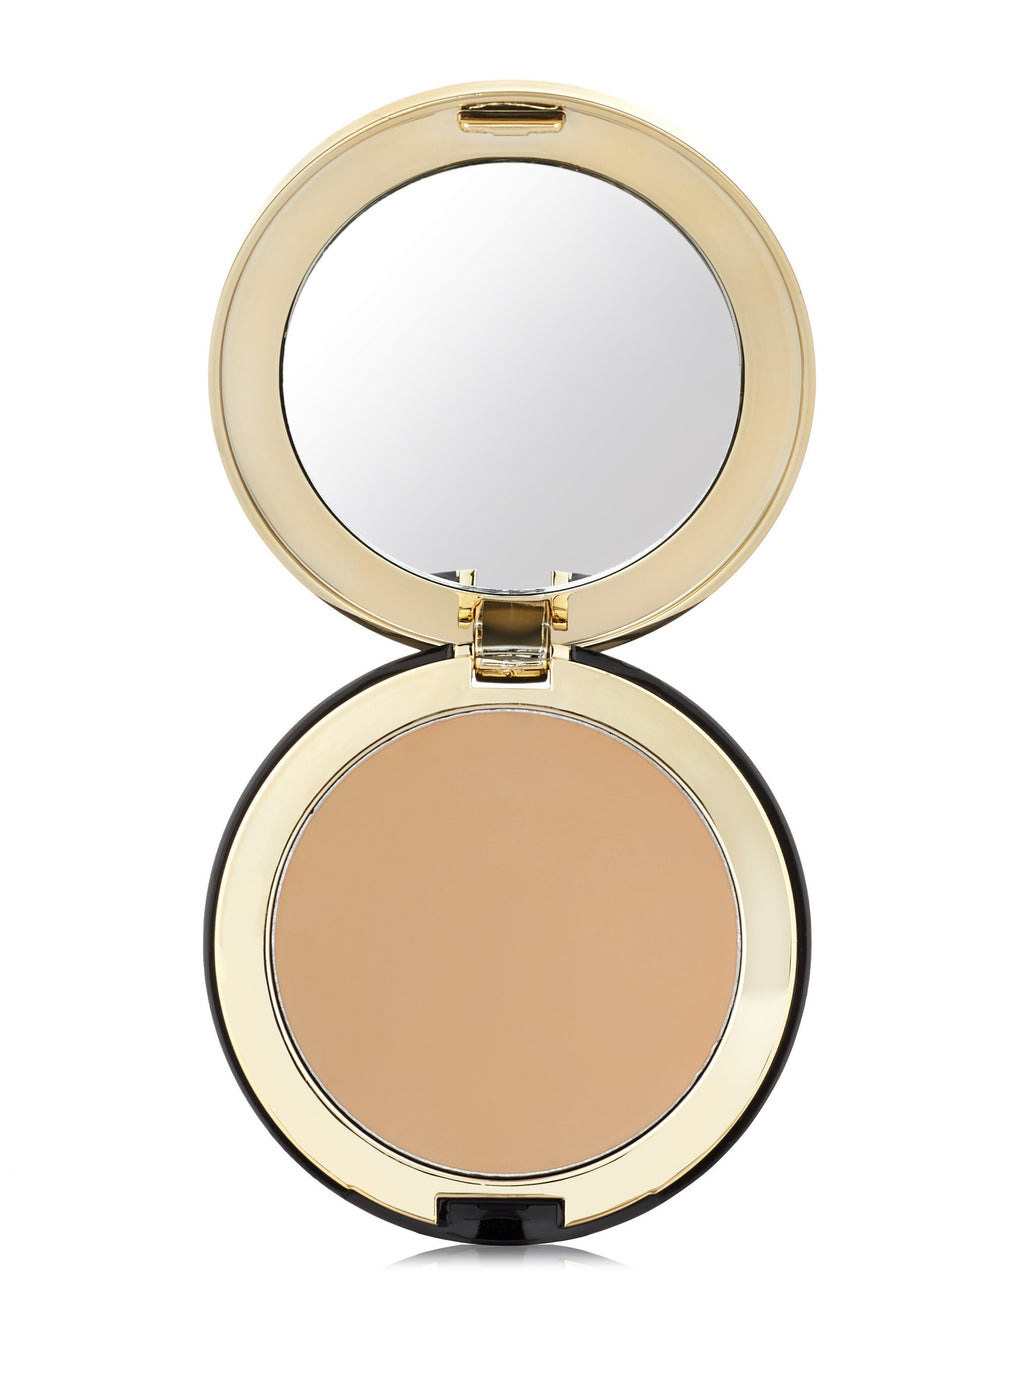 Silk Oil of Morocco cream foundation Cream Silk Oil Of Morocco Cream Compact Foundation